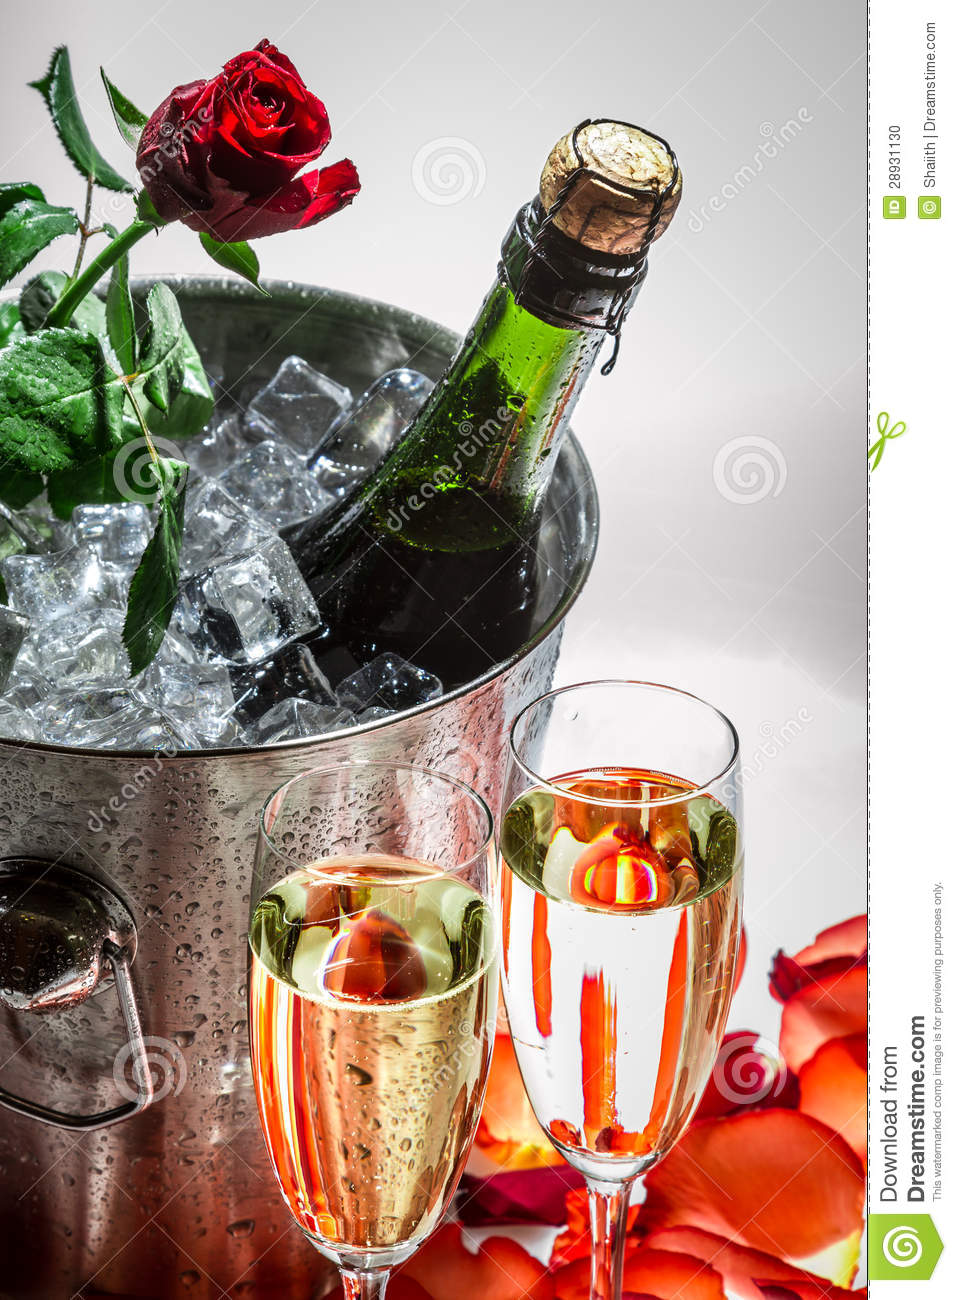 Closeu Of Red Rose And Cold Champagne For Valentine S Day